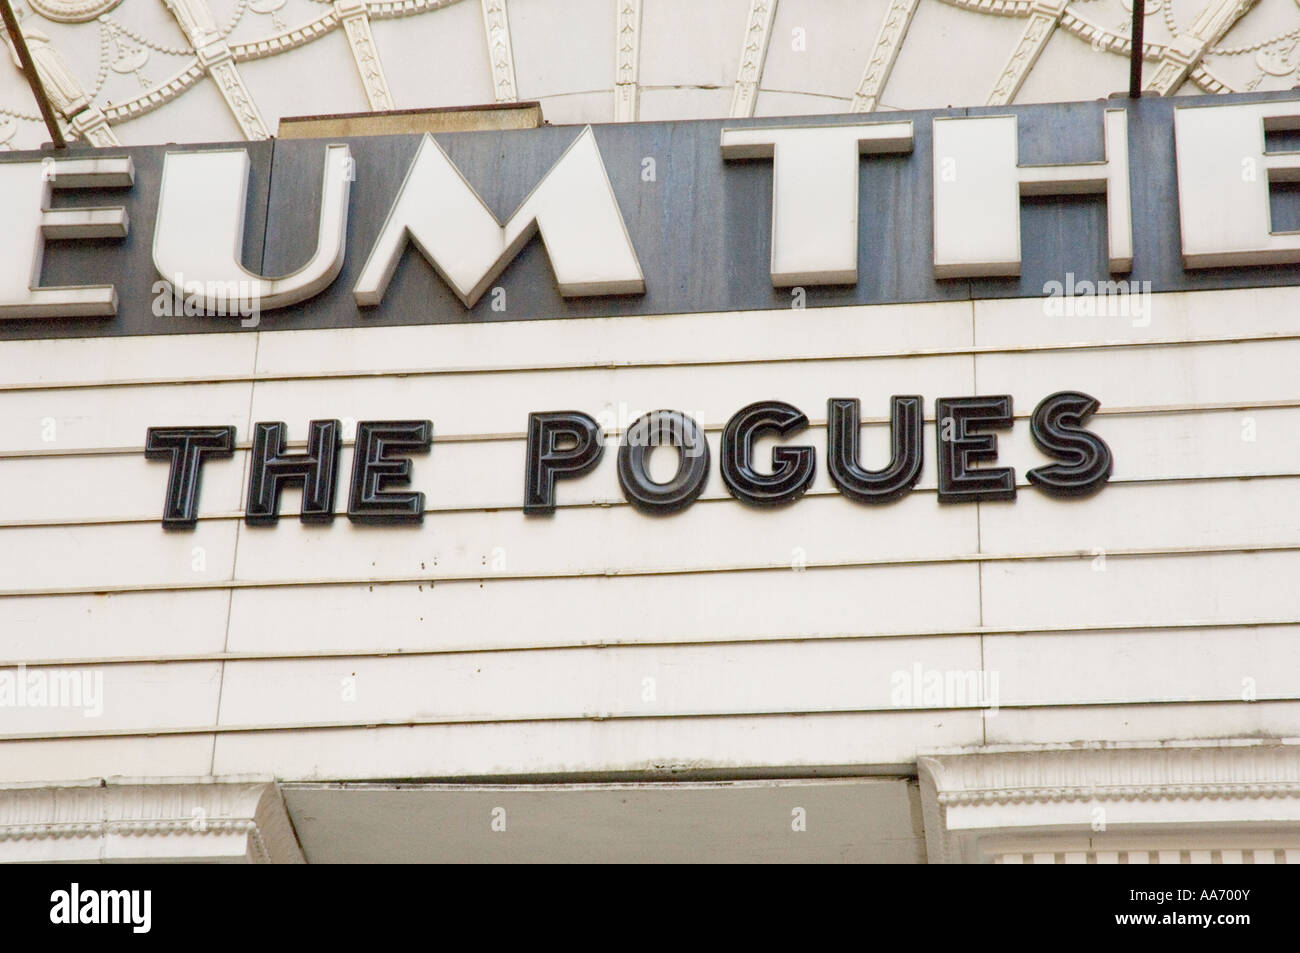 The Pogues at Boston's Orpheum Theatre - Stock Image